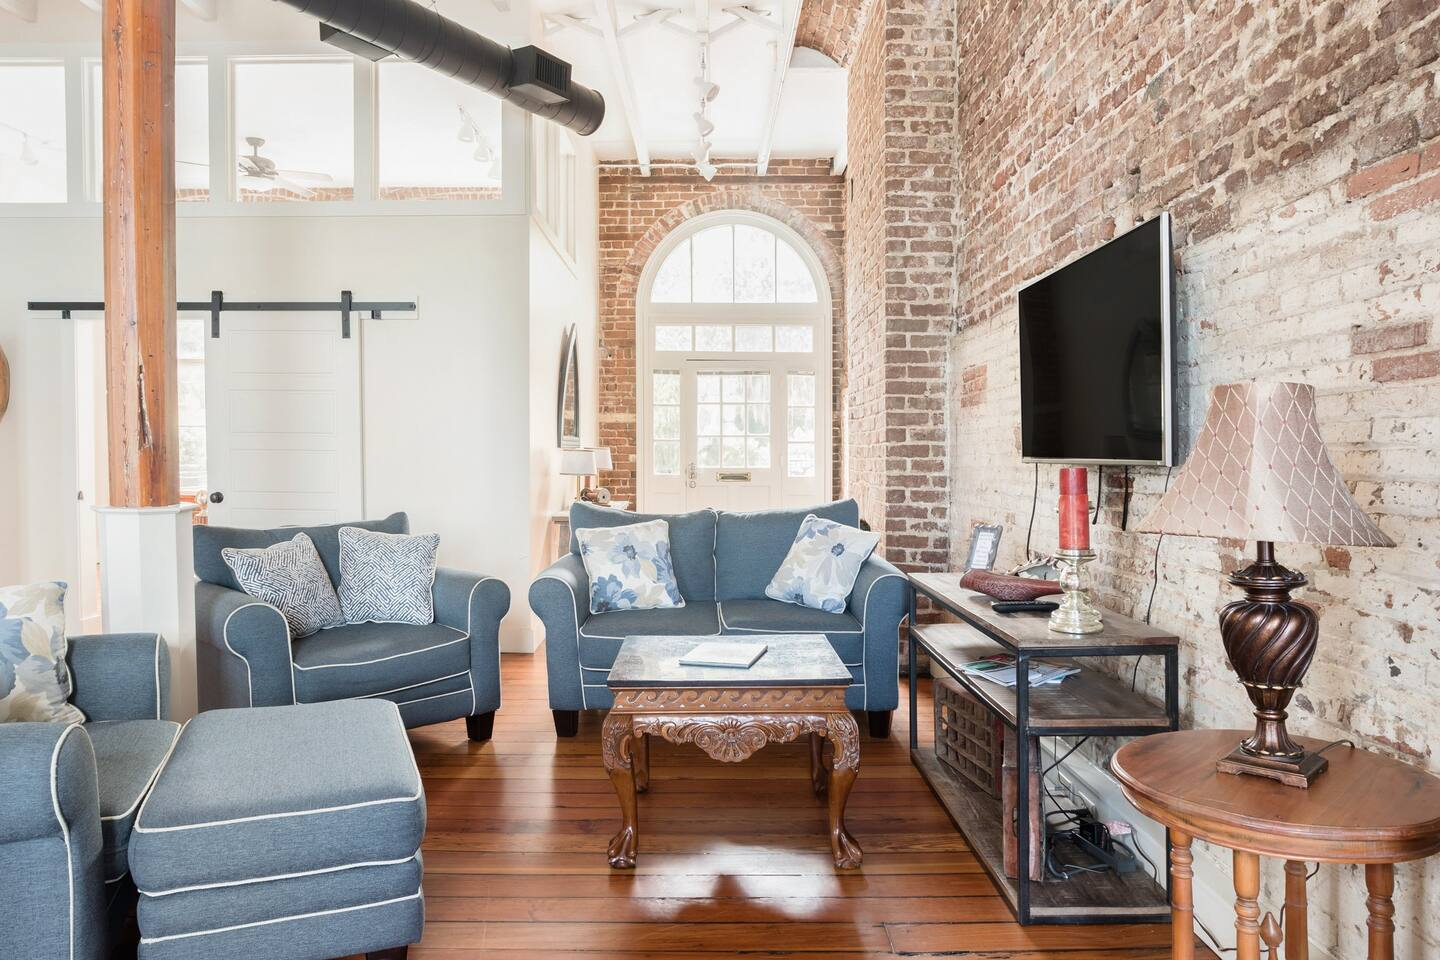 Downtown Riverfront Condo With Industrial Accents Airbnb in Savannah